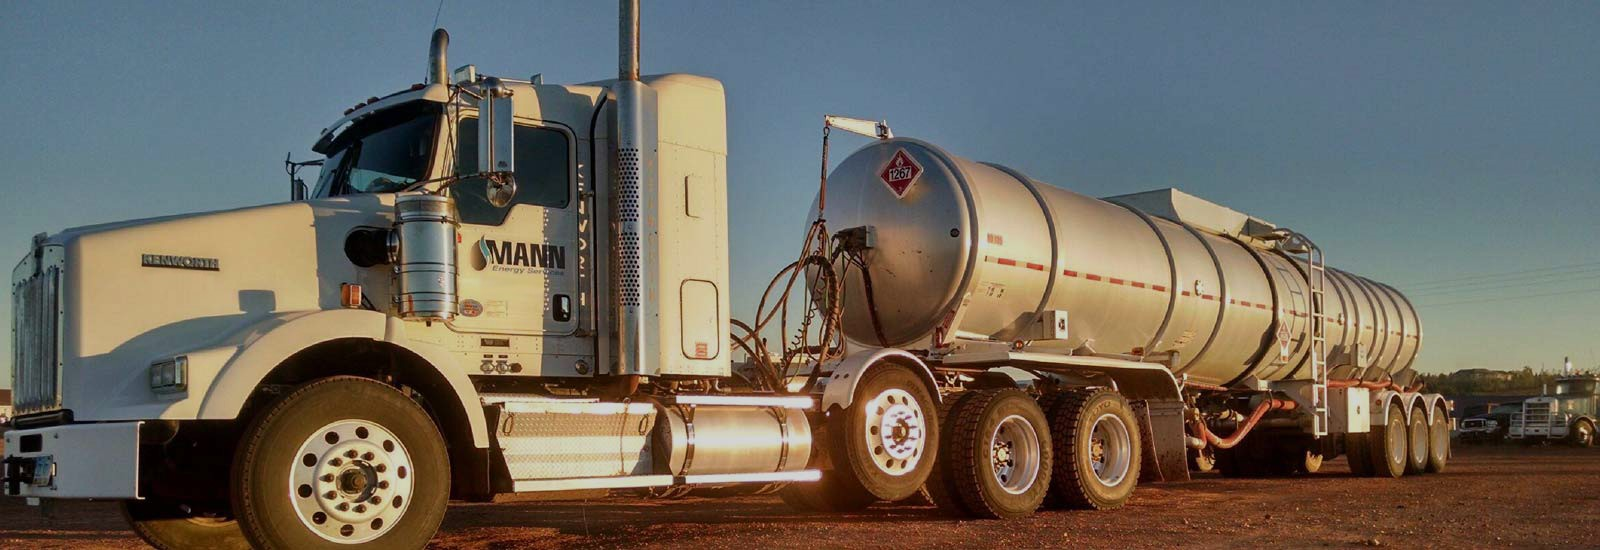 Oilfield Hauling Services